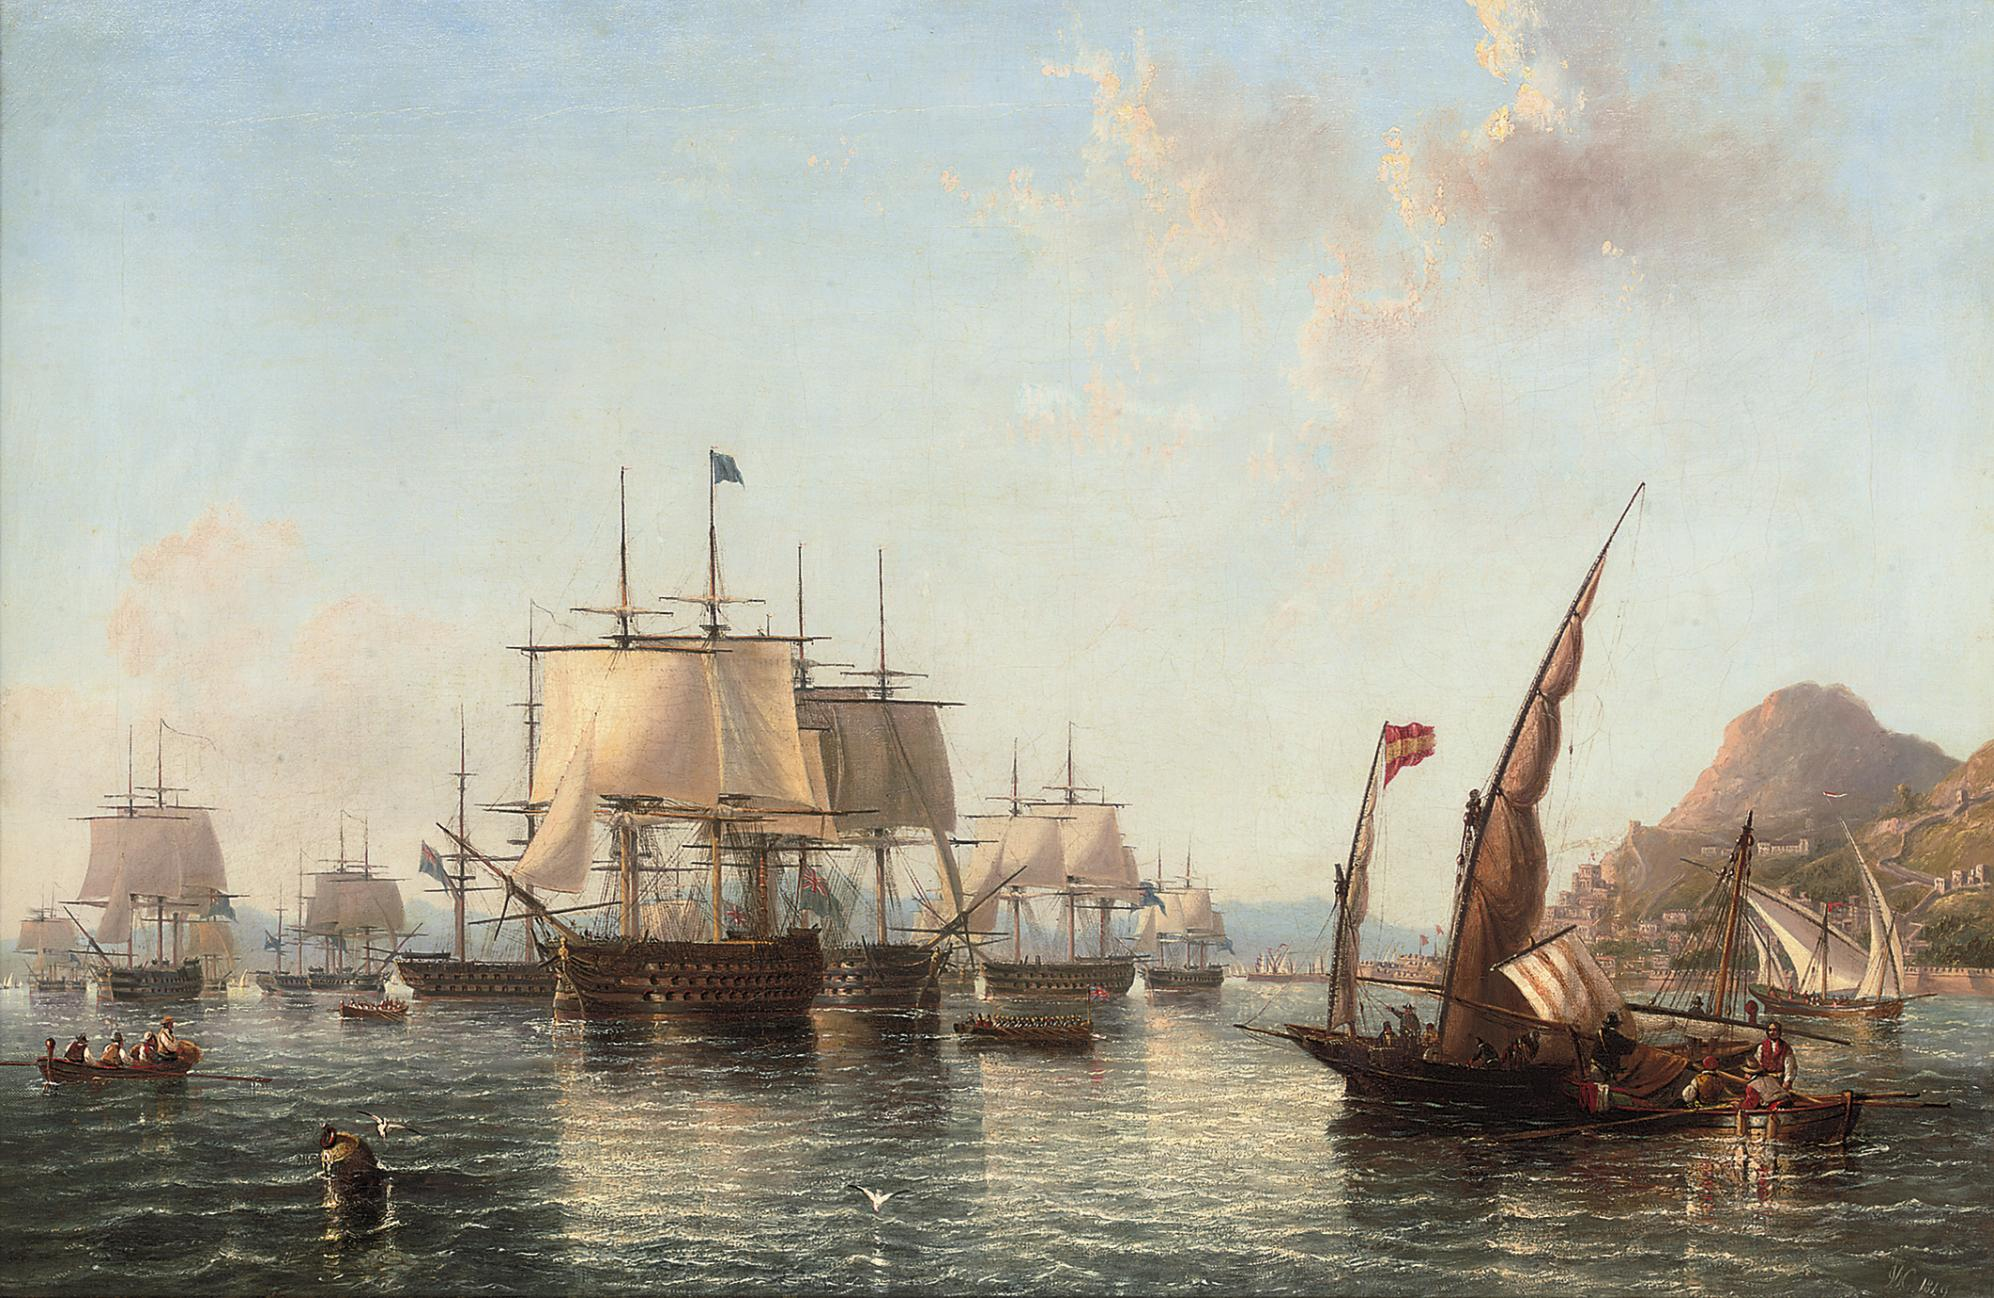 Admiral Lord Exmouth's fleet preparing to leave Gibraltar for the battle of Algiers, August 1816